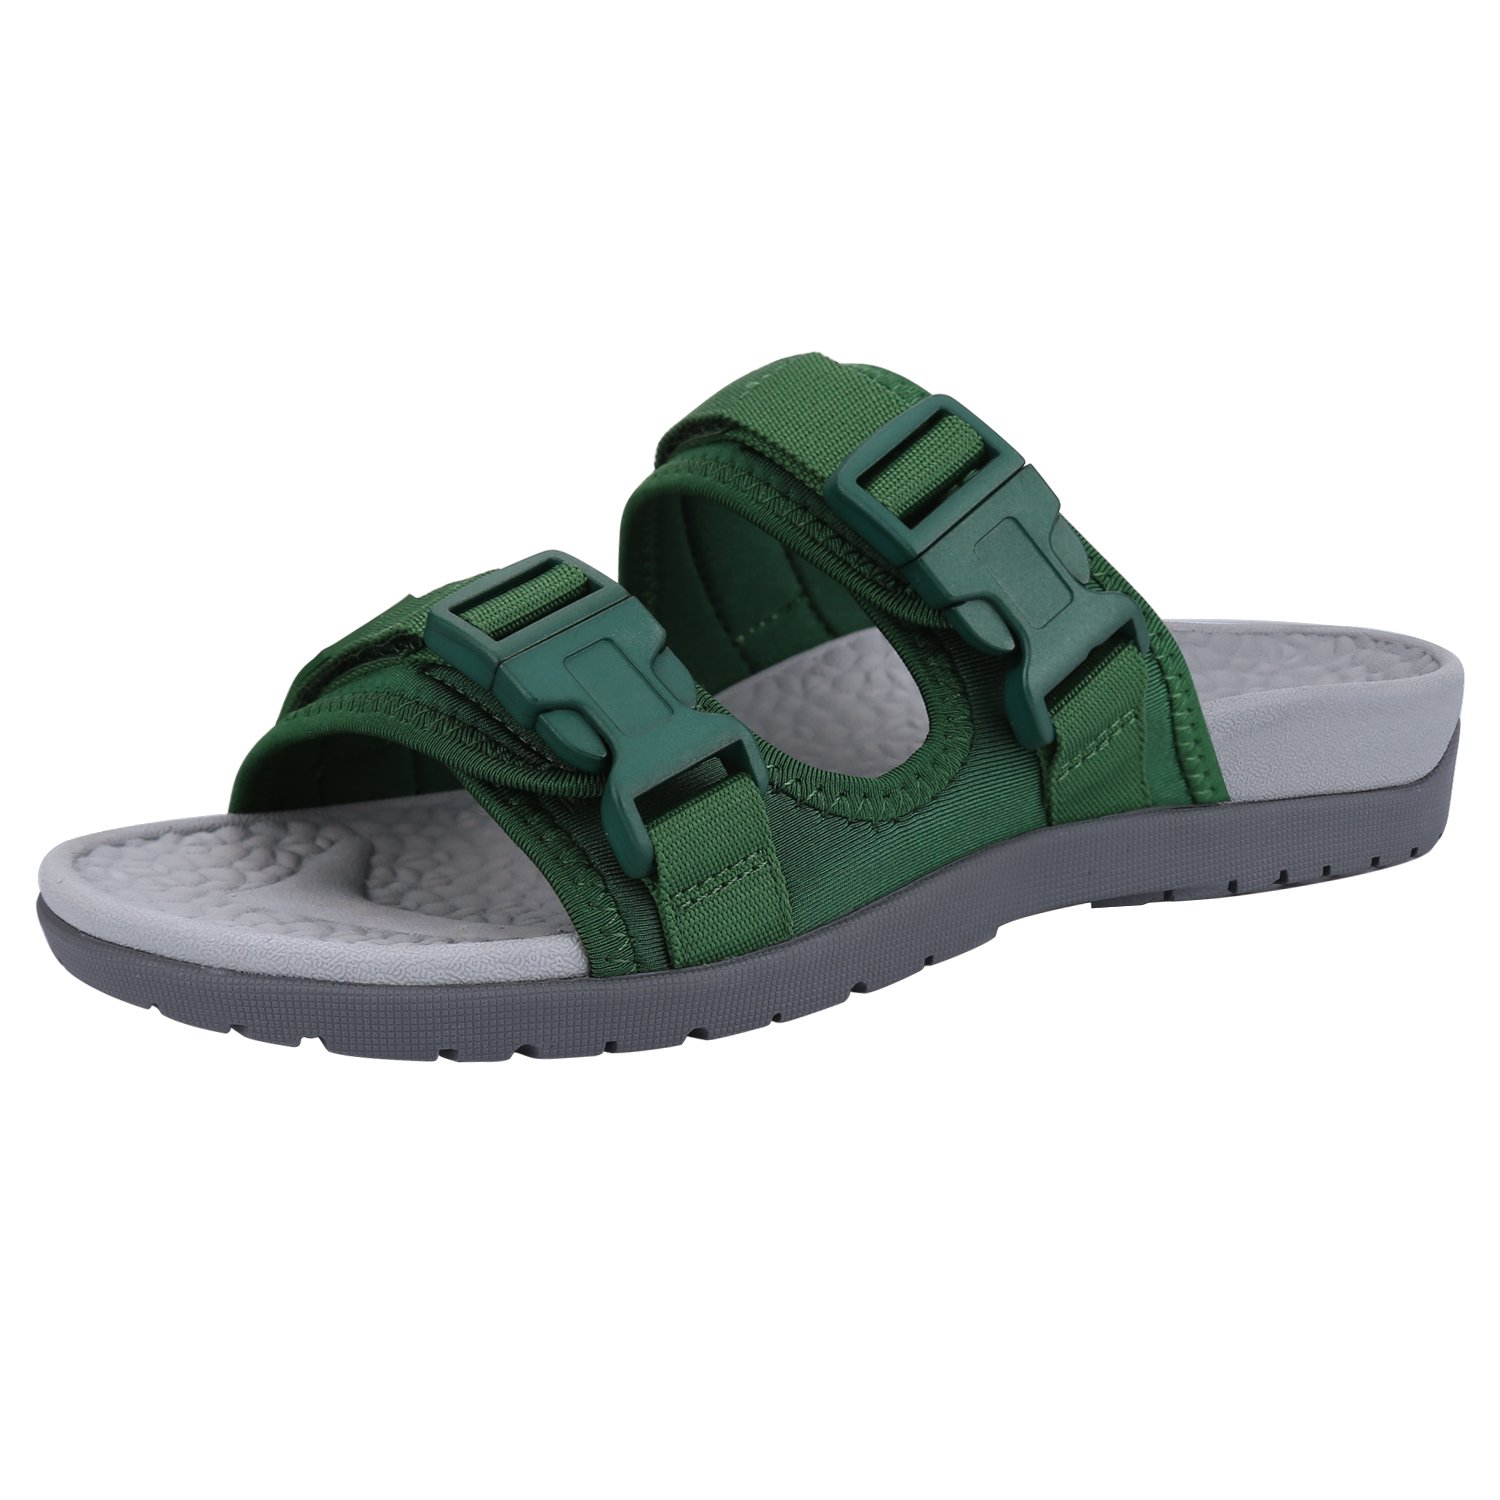 Everhealth Orthotic Sandals Women Buckle Slides Sandal Outdoor Slippers with Arch Support for Plantar Fasciitis (Deep Teal 8 US Women/7 US Men)